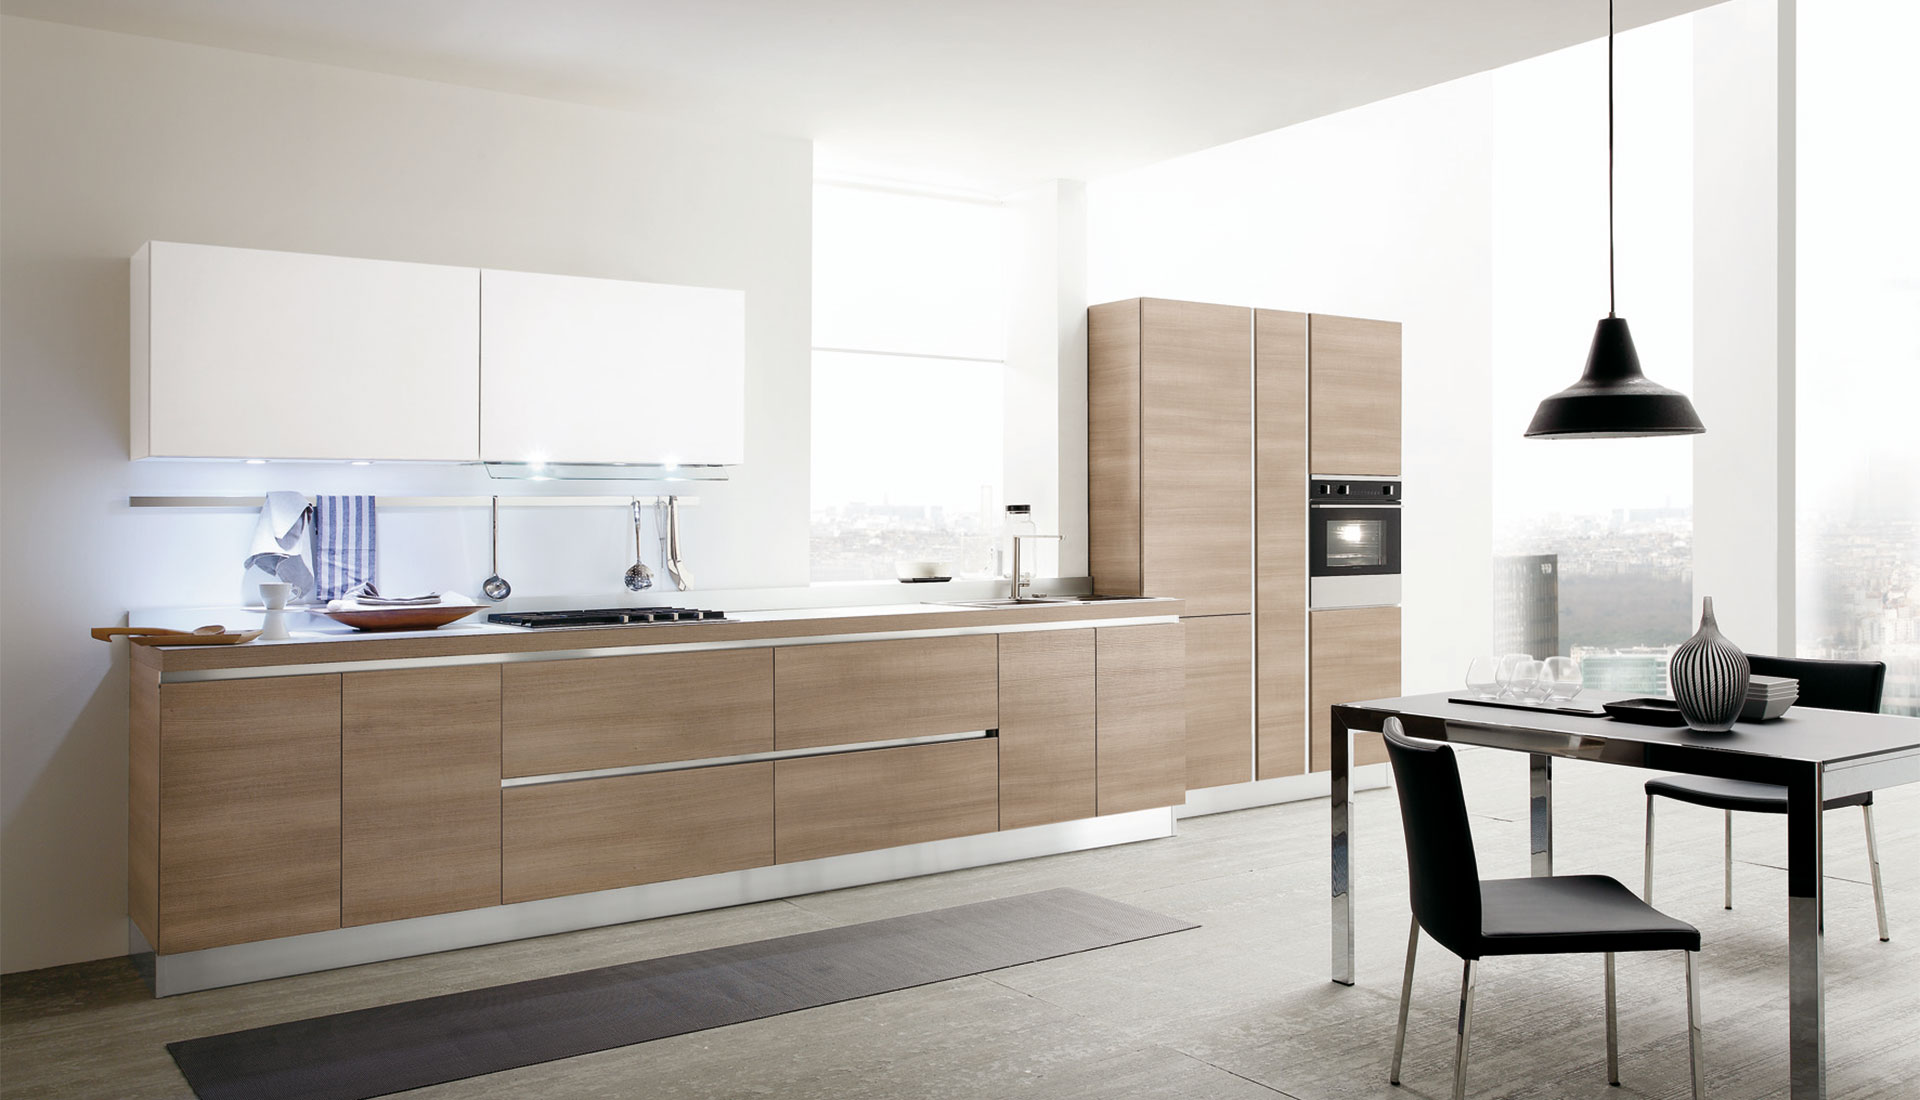 The modern kitchen model joy by gicinque is enriched by the gola